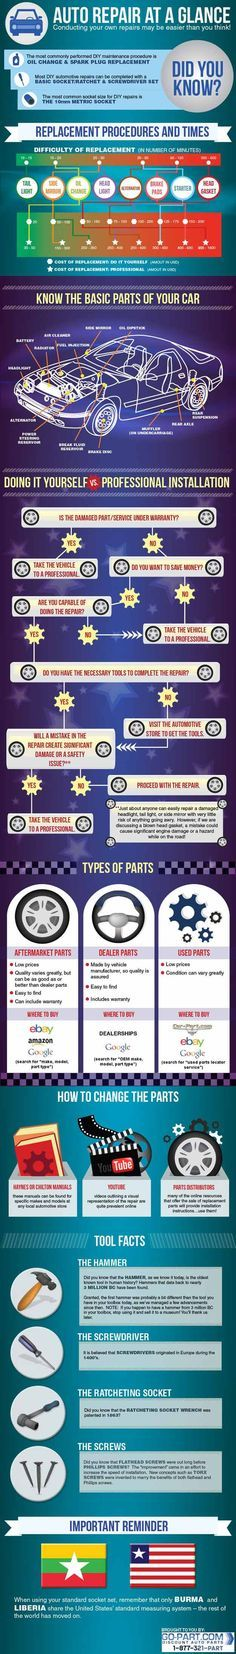 Auto Repair at a Glance | Get Started Here! | A Quick Guide For Basic Auto Repair by Pioneer Settler at http://pioneersettler.com/auto-repair-at-a-glance/